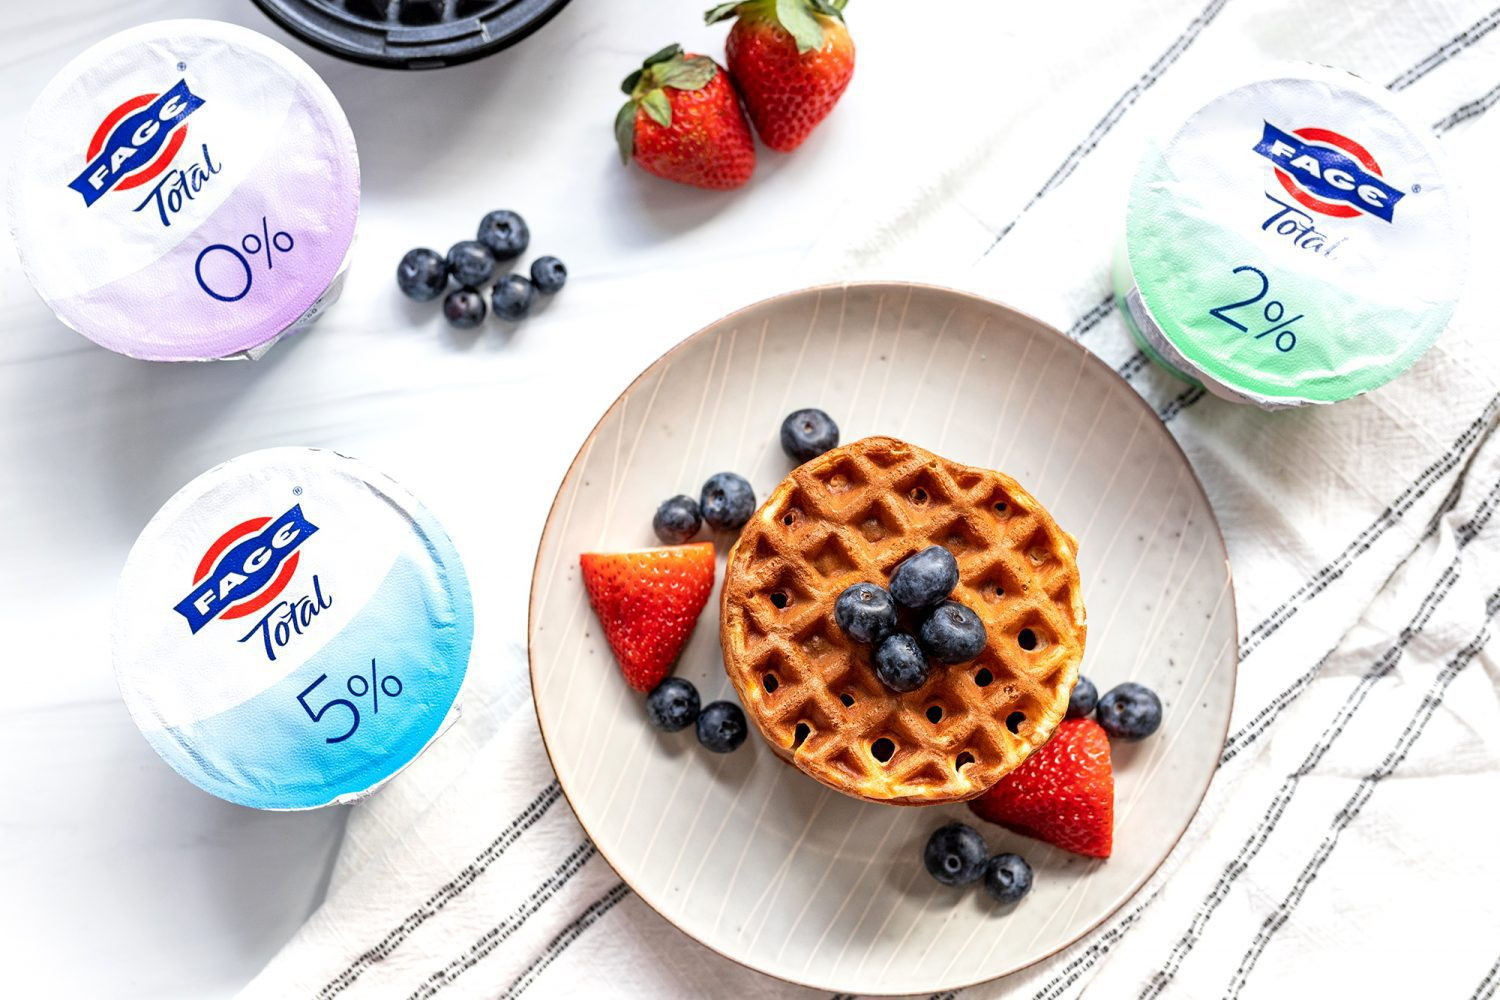 aerial view of a plate of waffles and FAGE yogurt